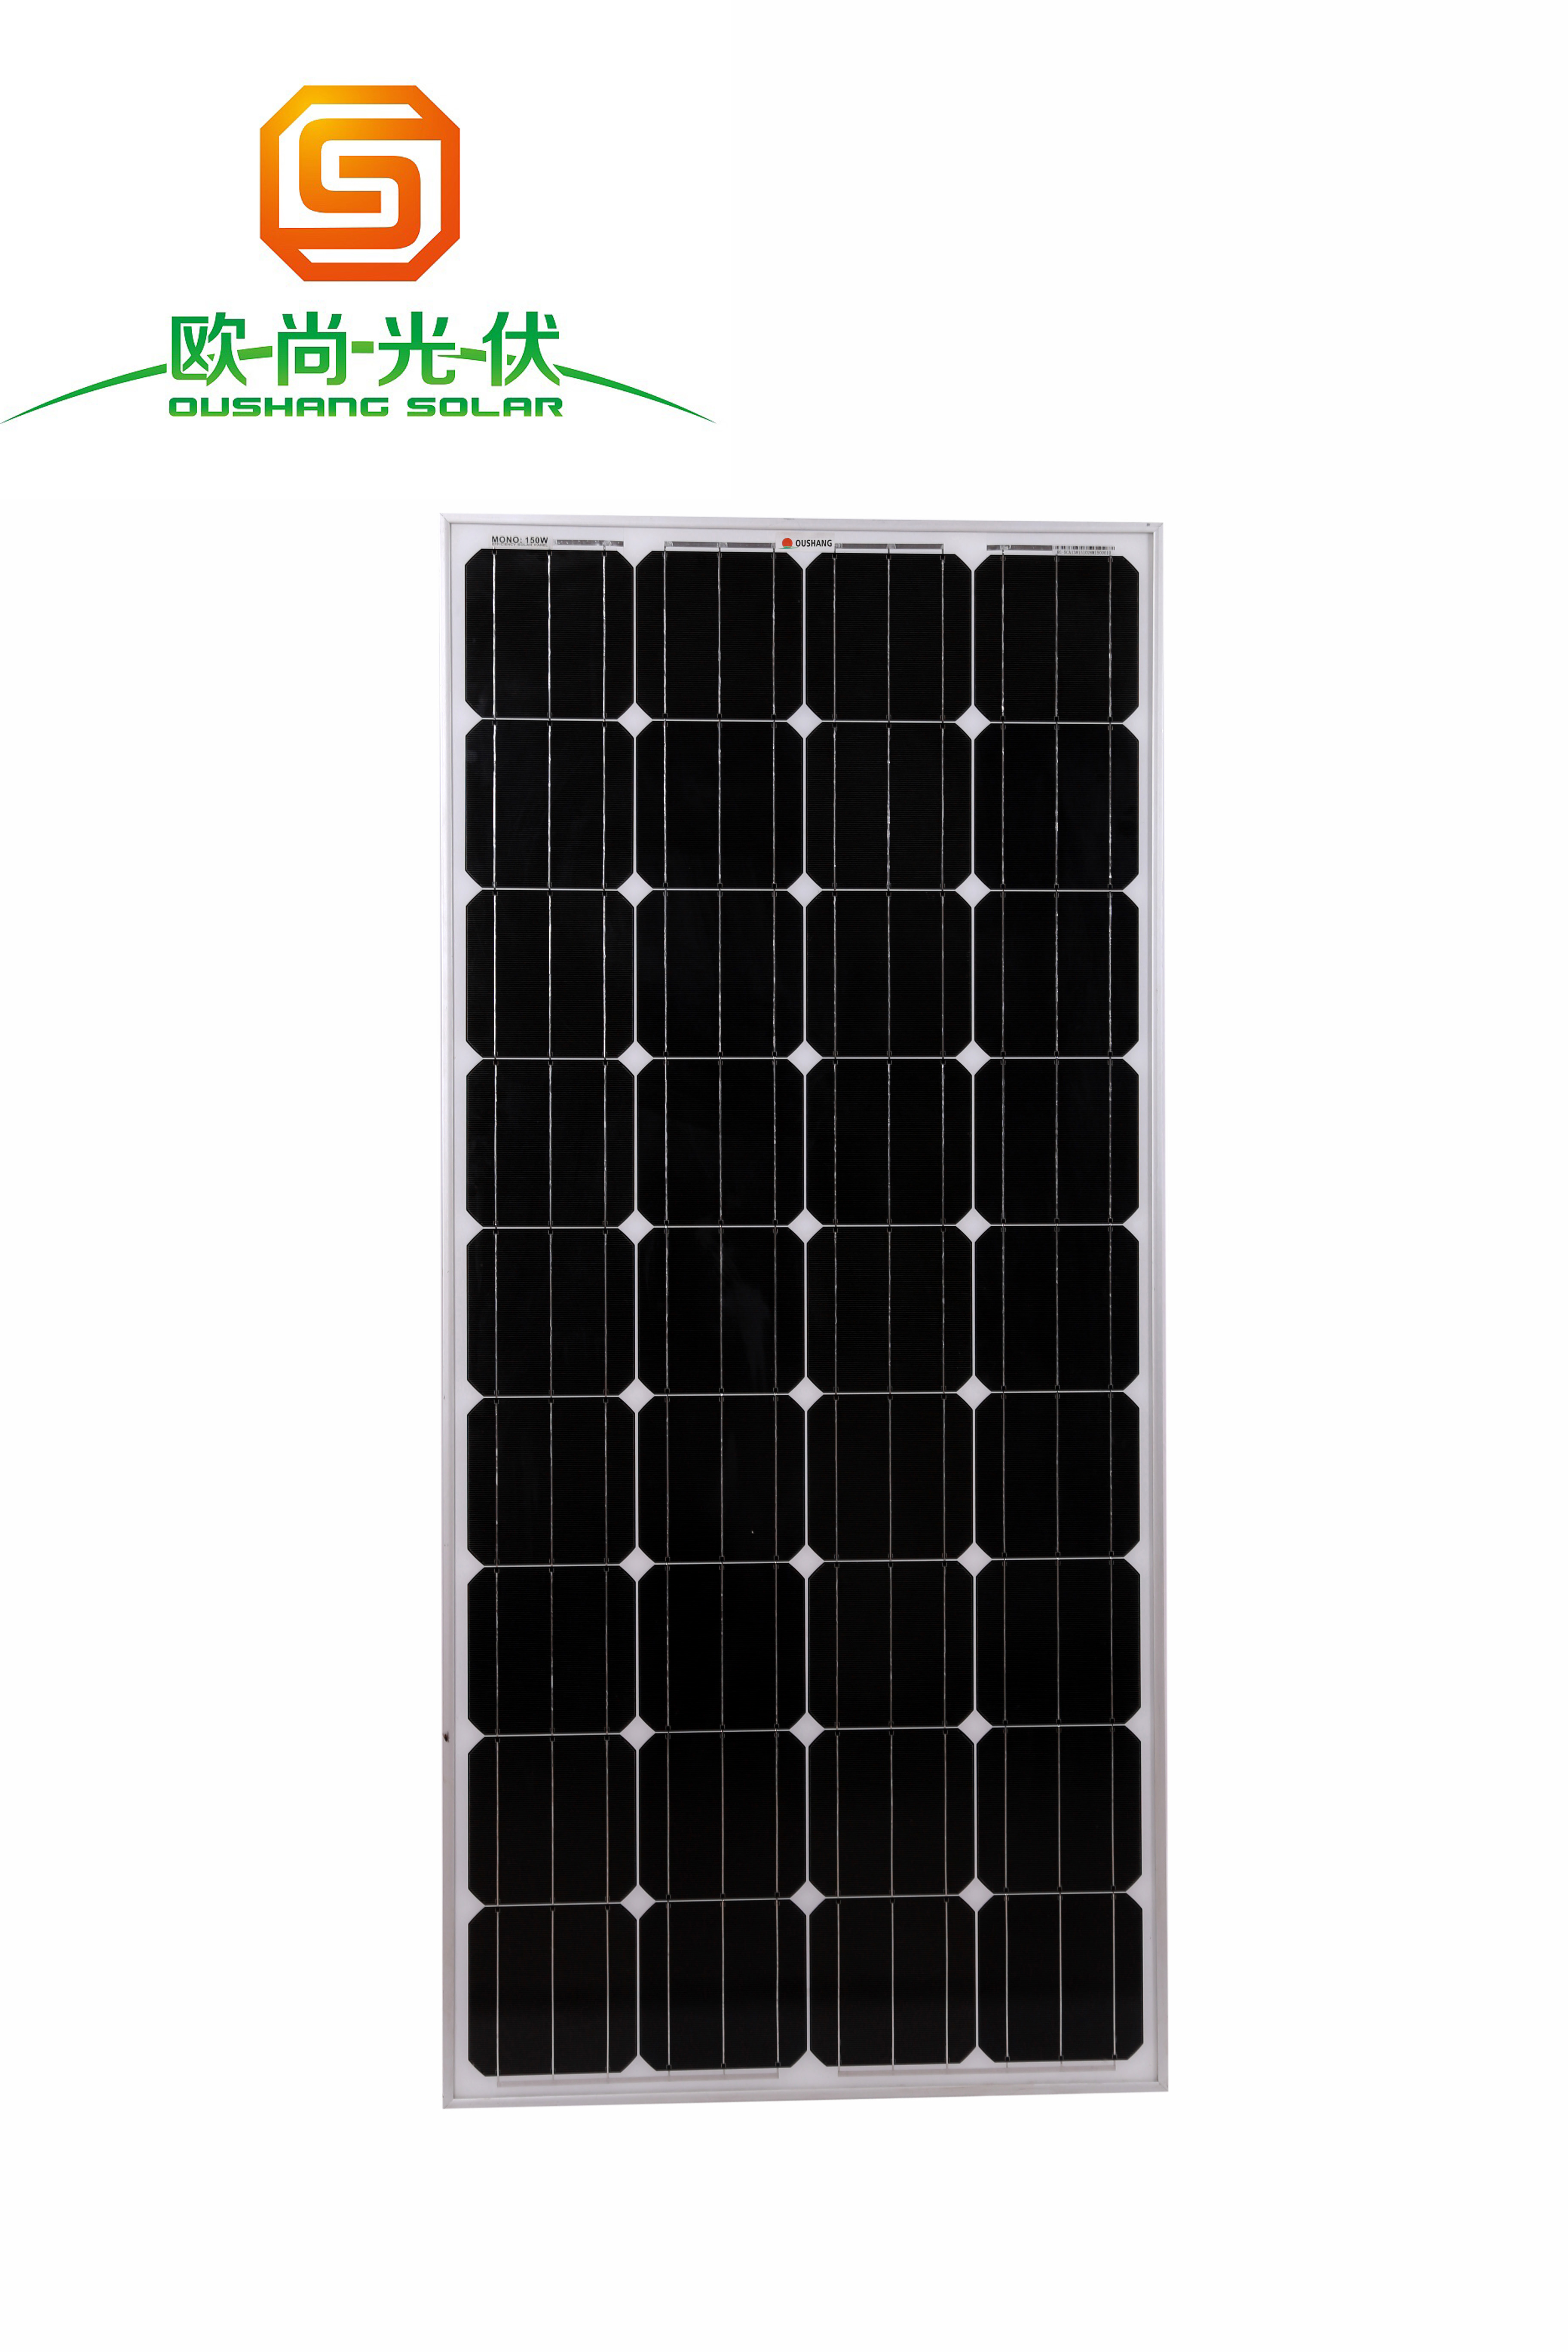 Hot Seller - Mono 150w Solar Panel with Oushang brand